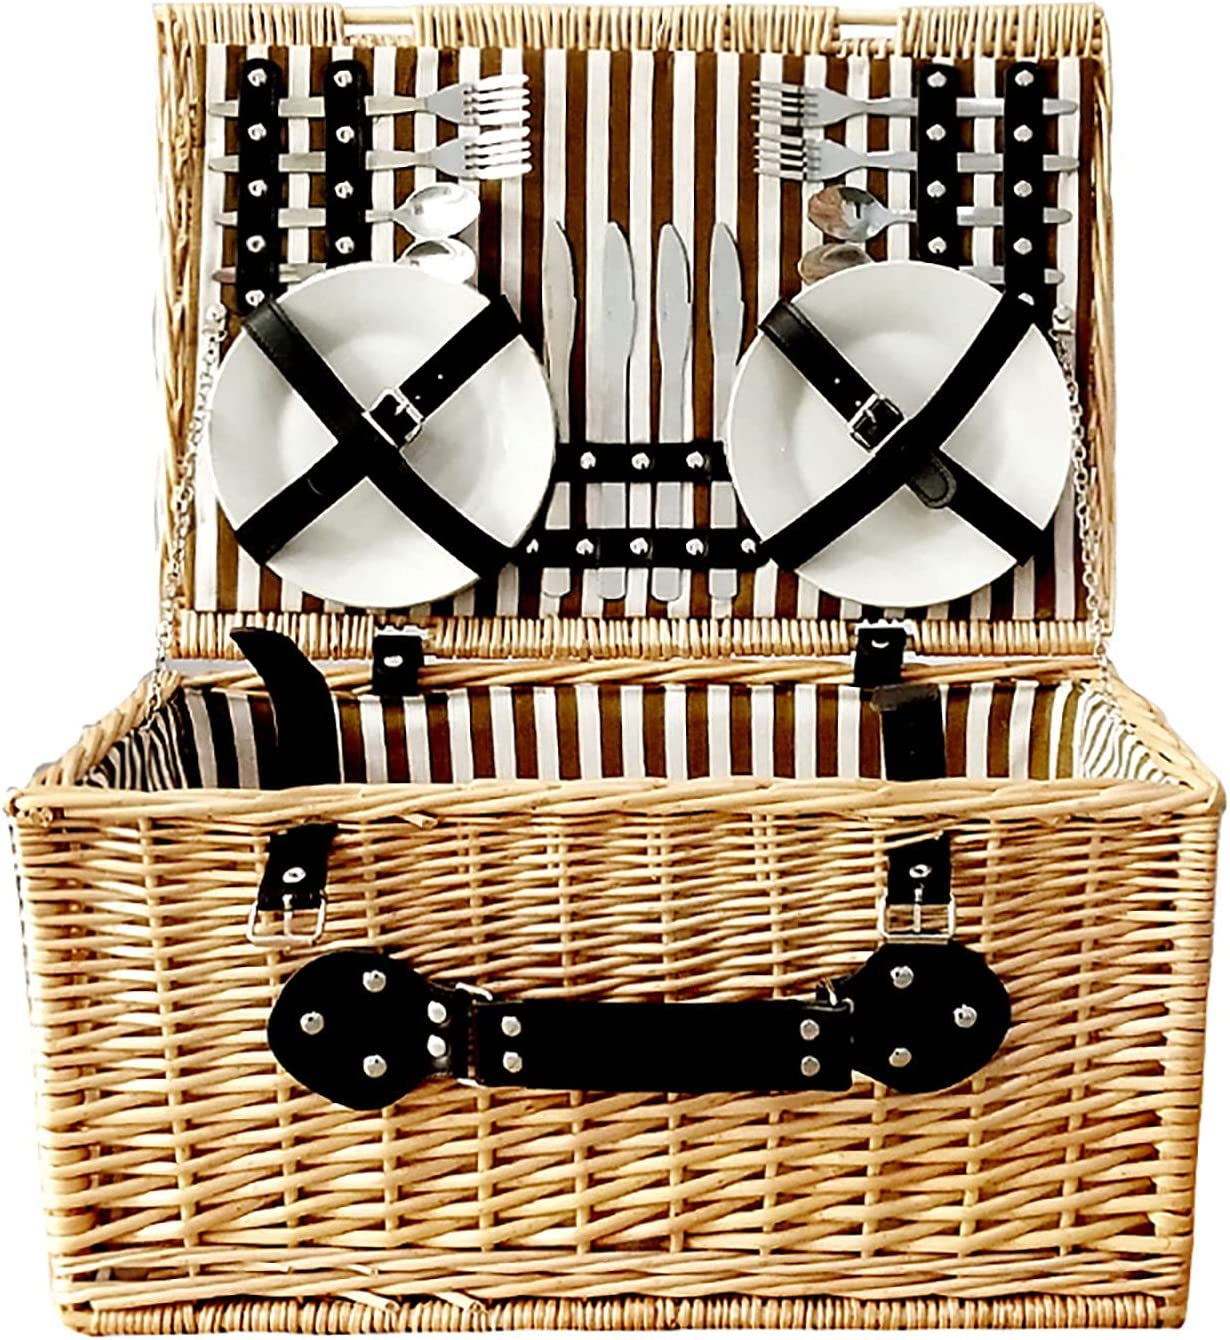 Wicker Picnic Basket Now online shopping free shipping for 4 Willow S Gift Hamper Storage Service